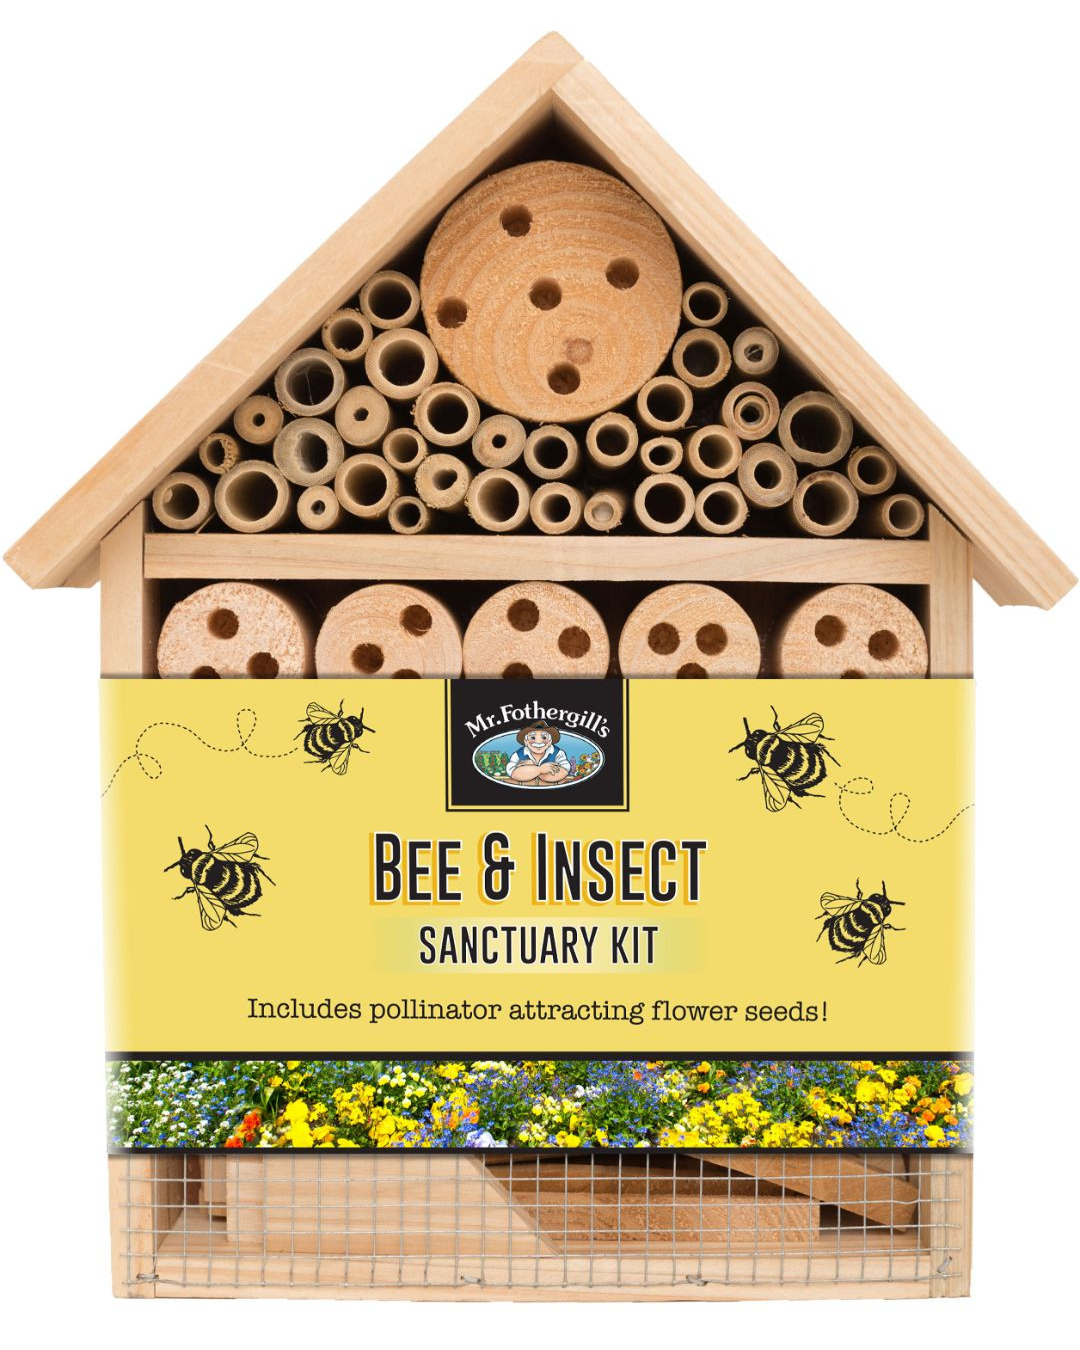 A cute, cottage-like bee and insect house